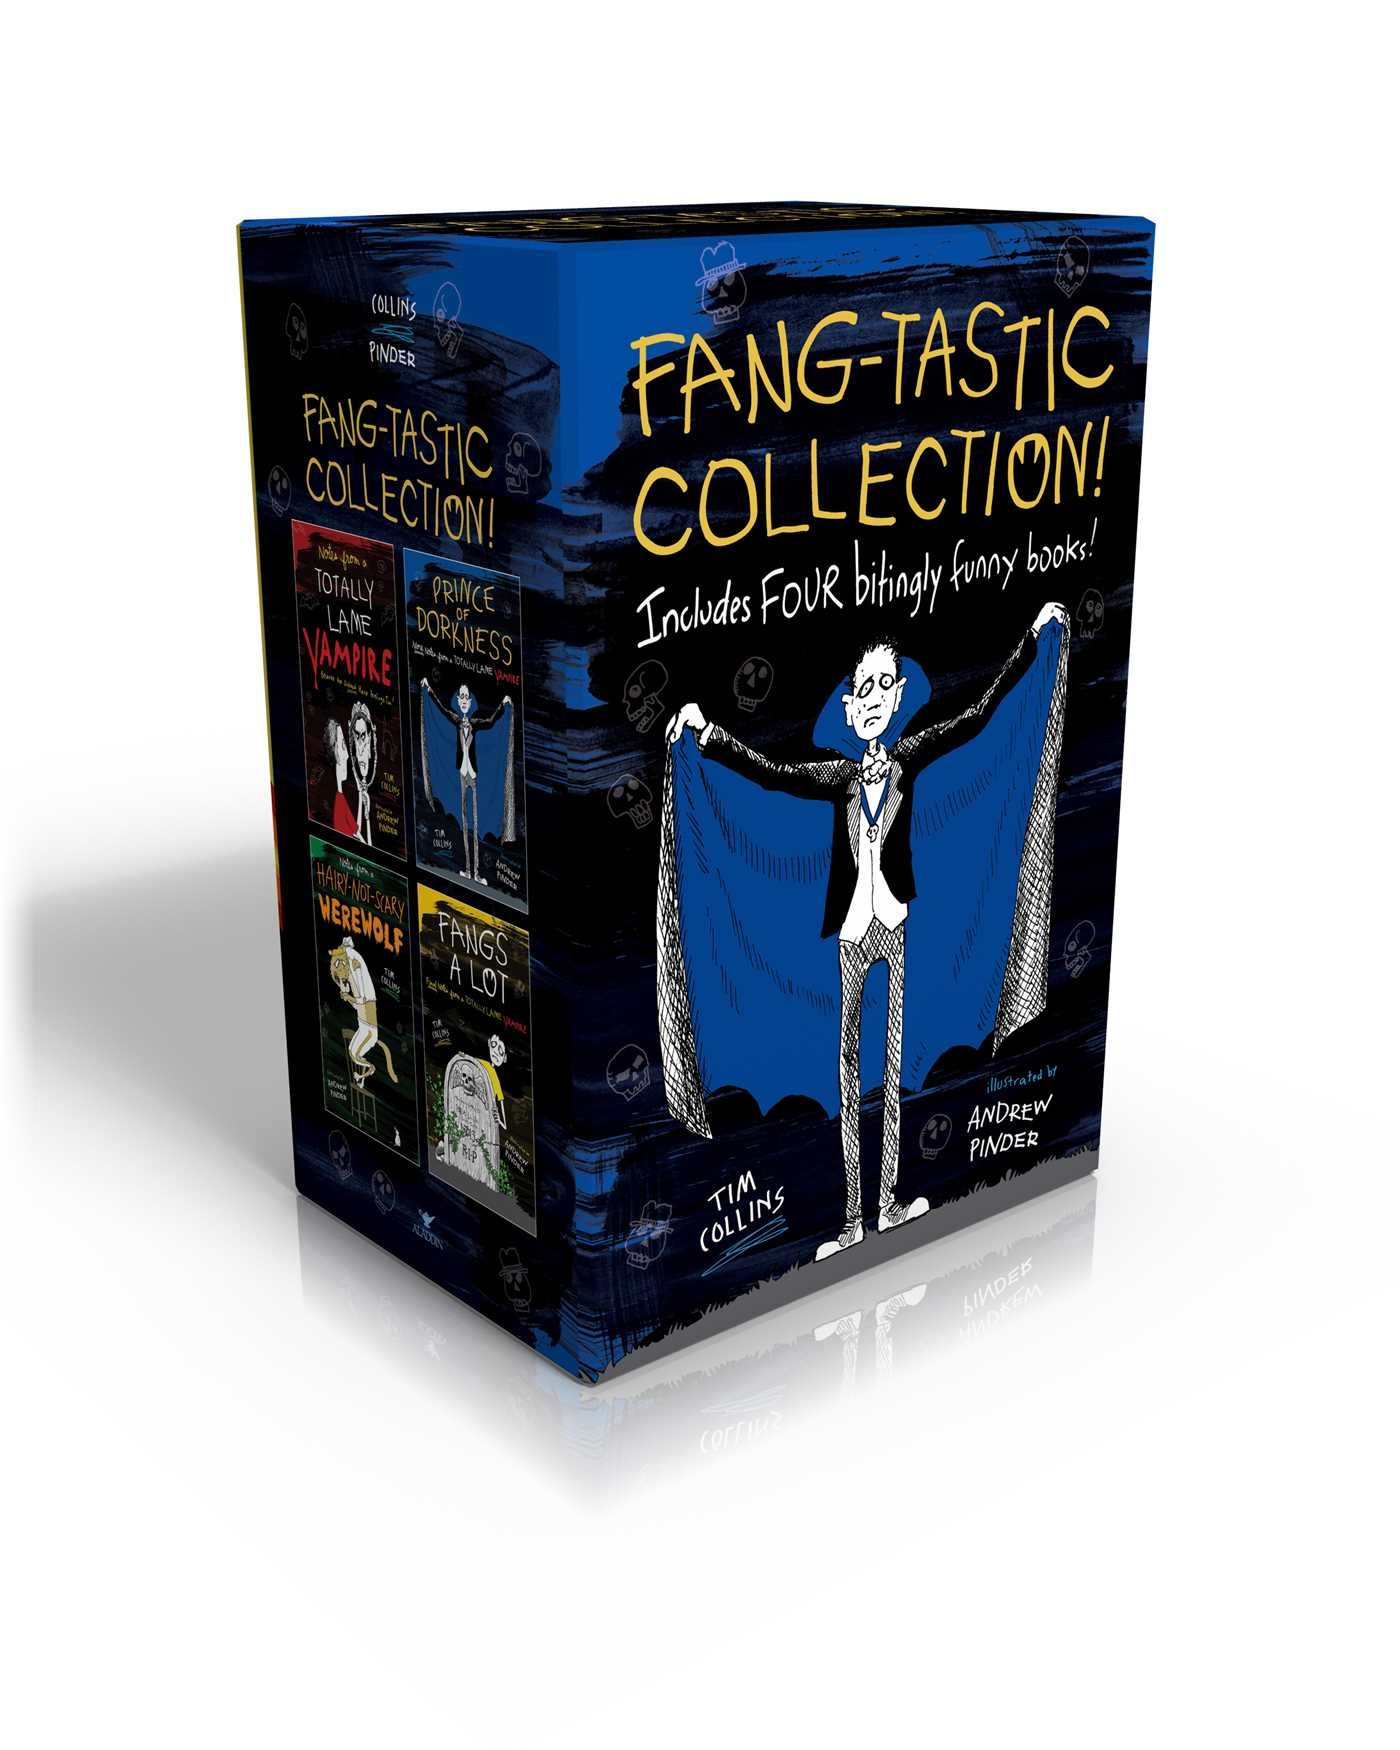 Fang-tastic Collection!: Notes from a Totally Lame Vampire; Prince of Dorkness; Notes from a Hairy-Not-Scary Werewolf; Fangs a Lot